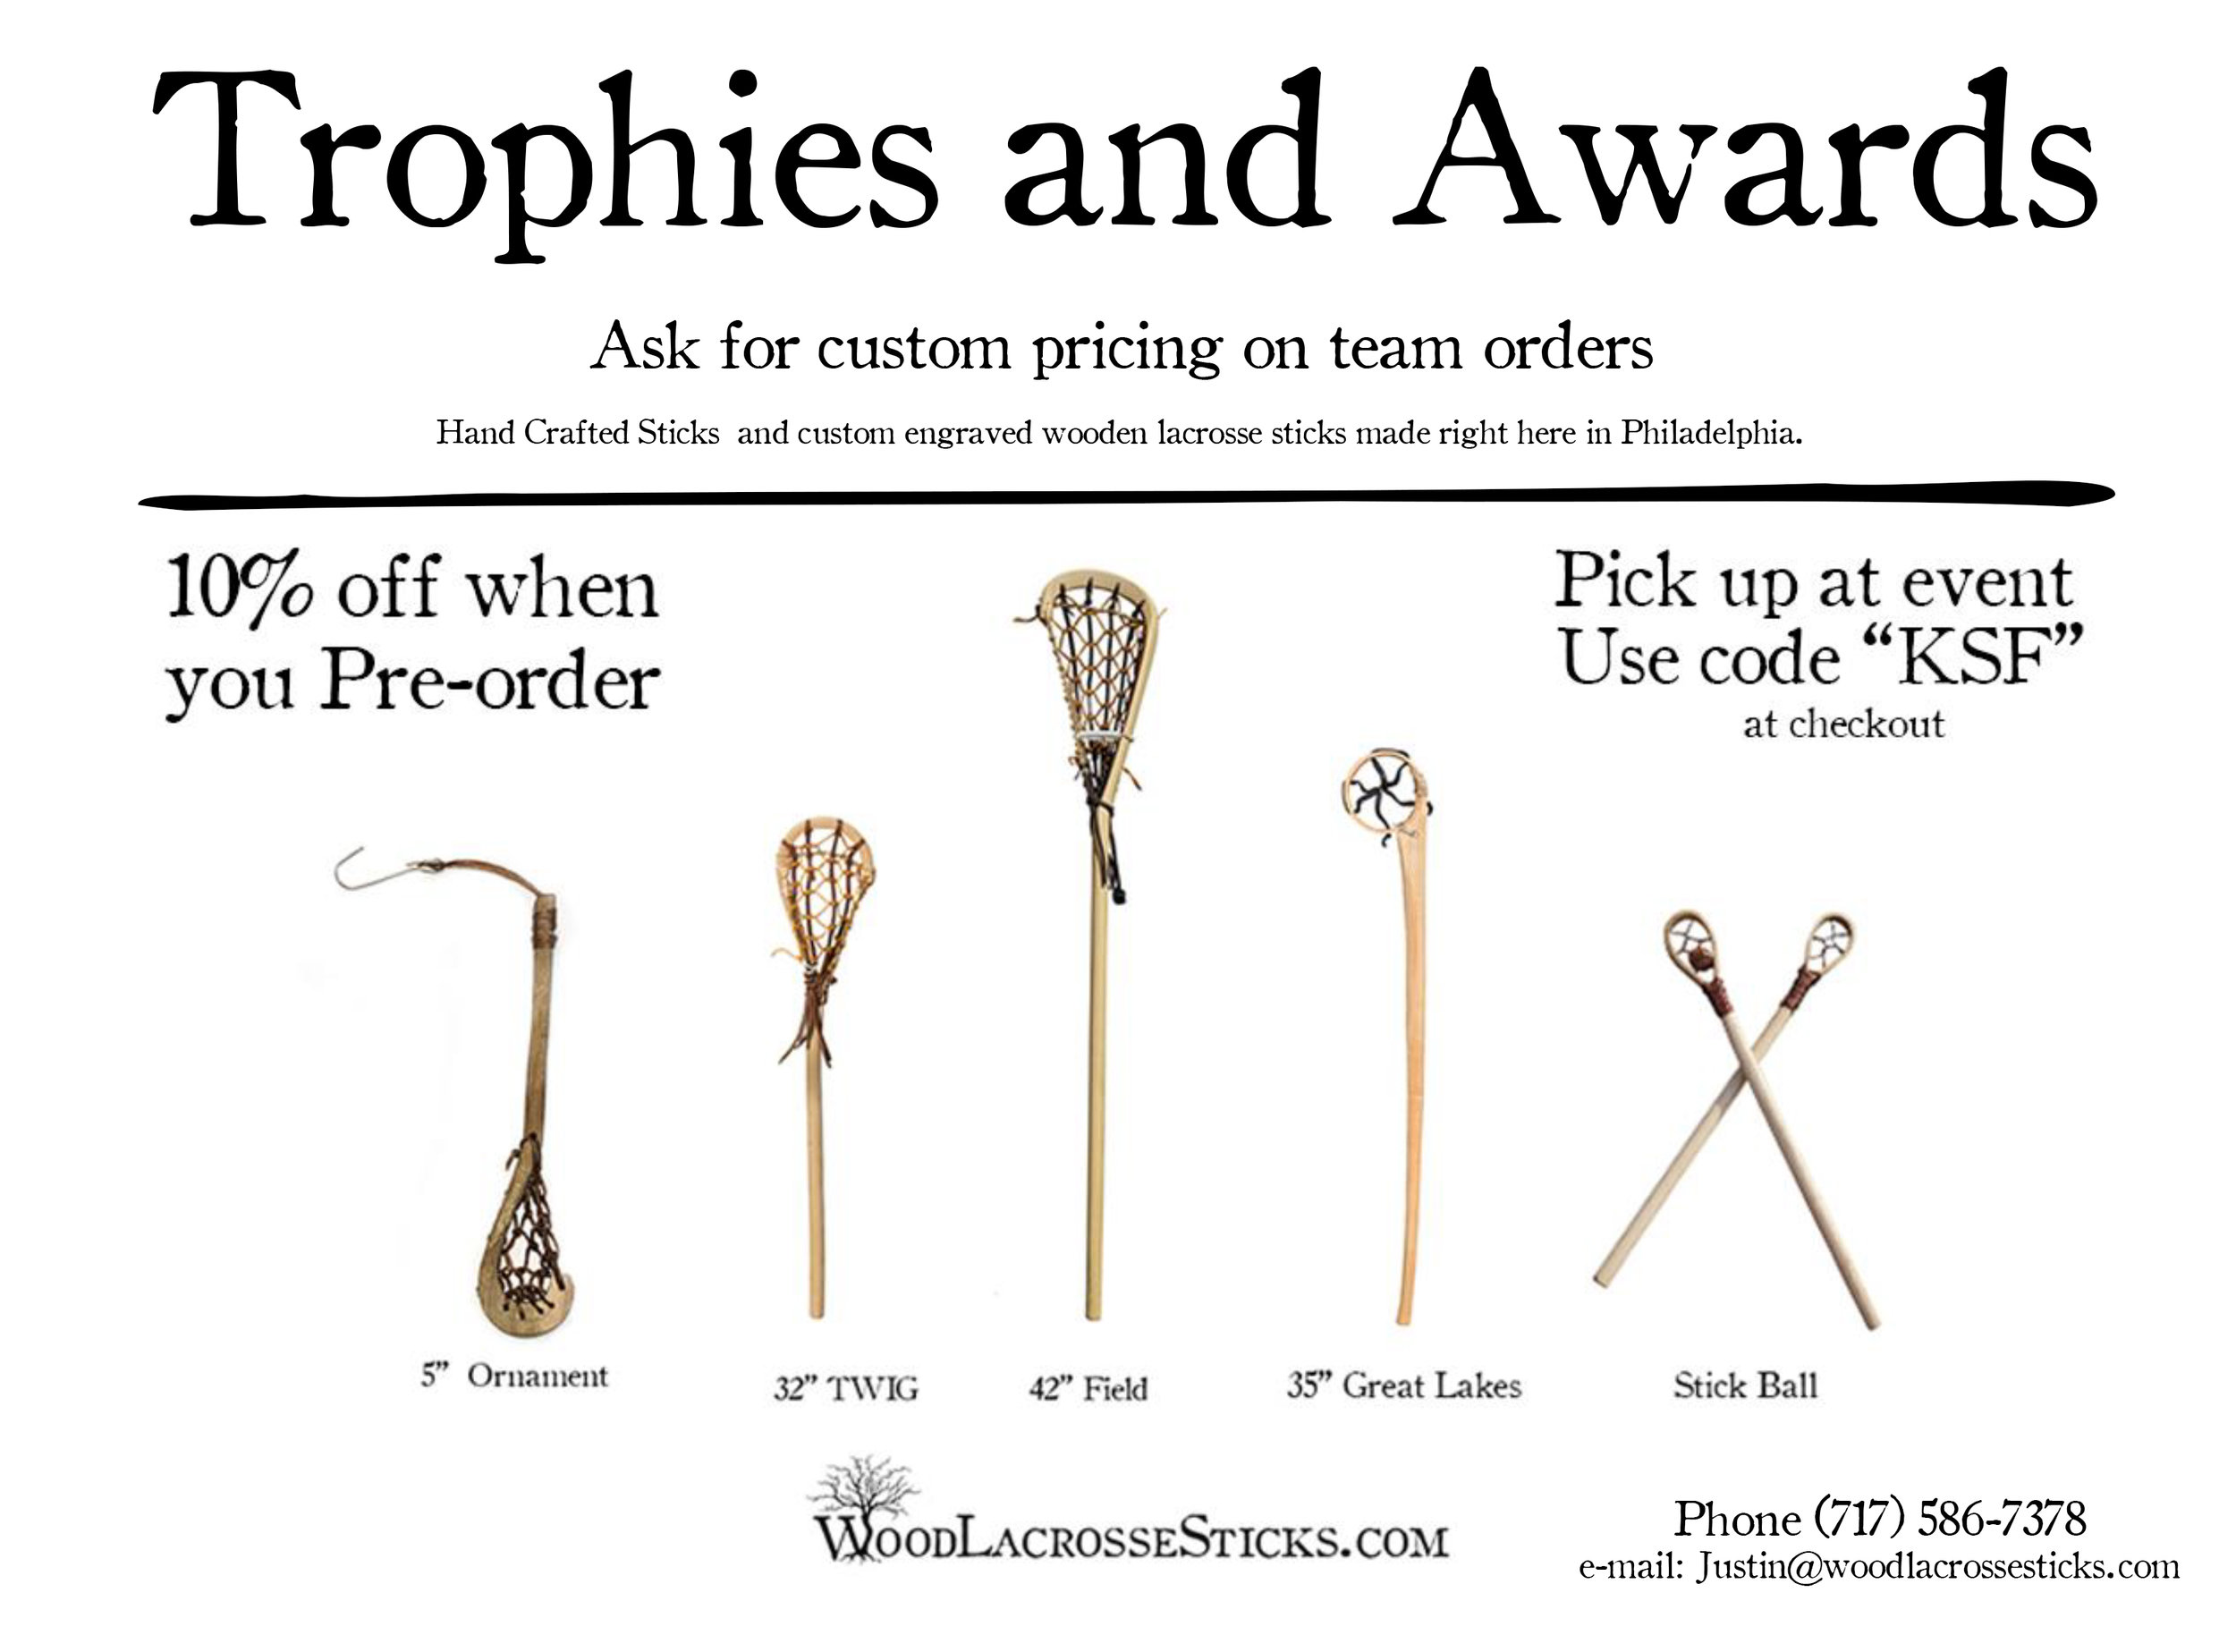 "Wood Lacrosse Sticks - Pre-order your hand crafted wooden lacrosse and receive 10% off your order! Just use code ""KSF"" at checkout."